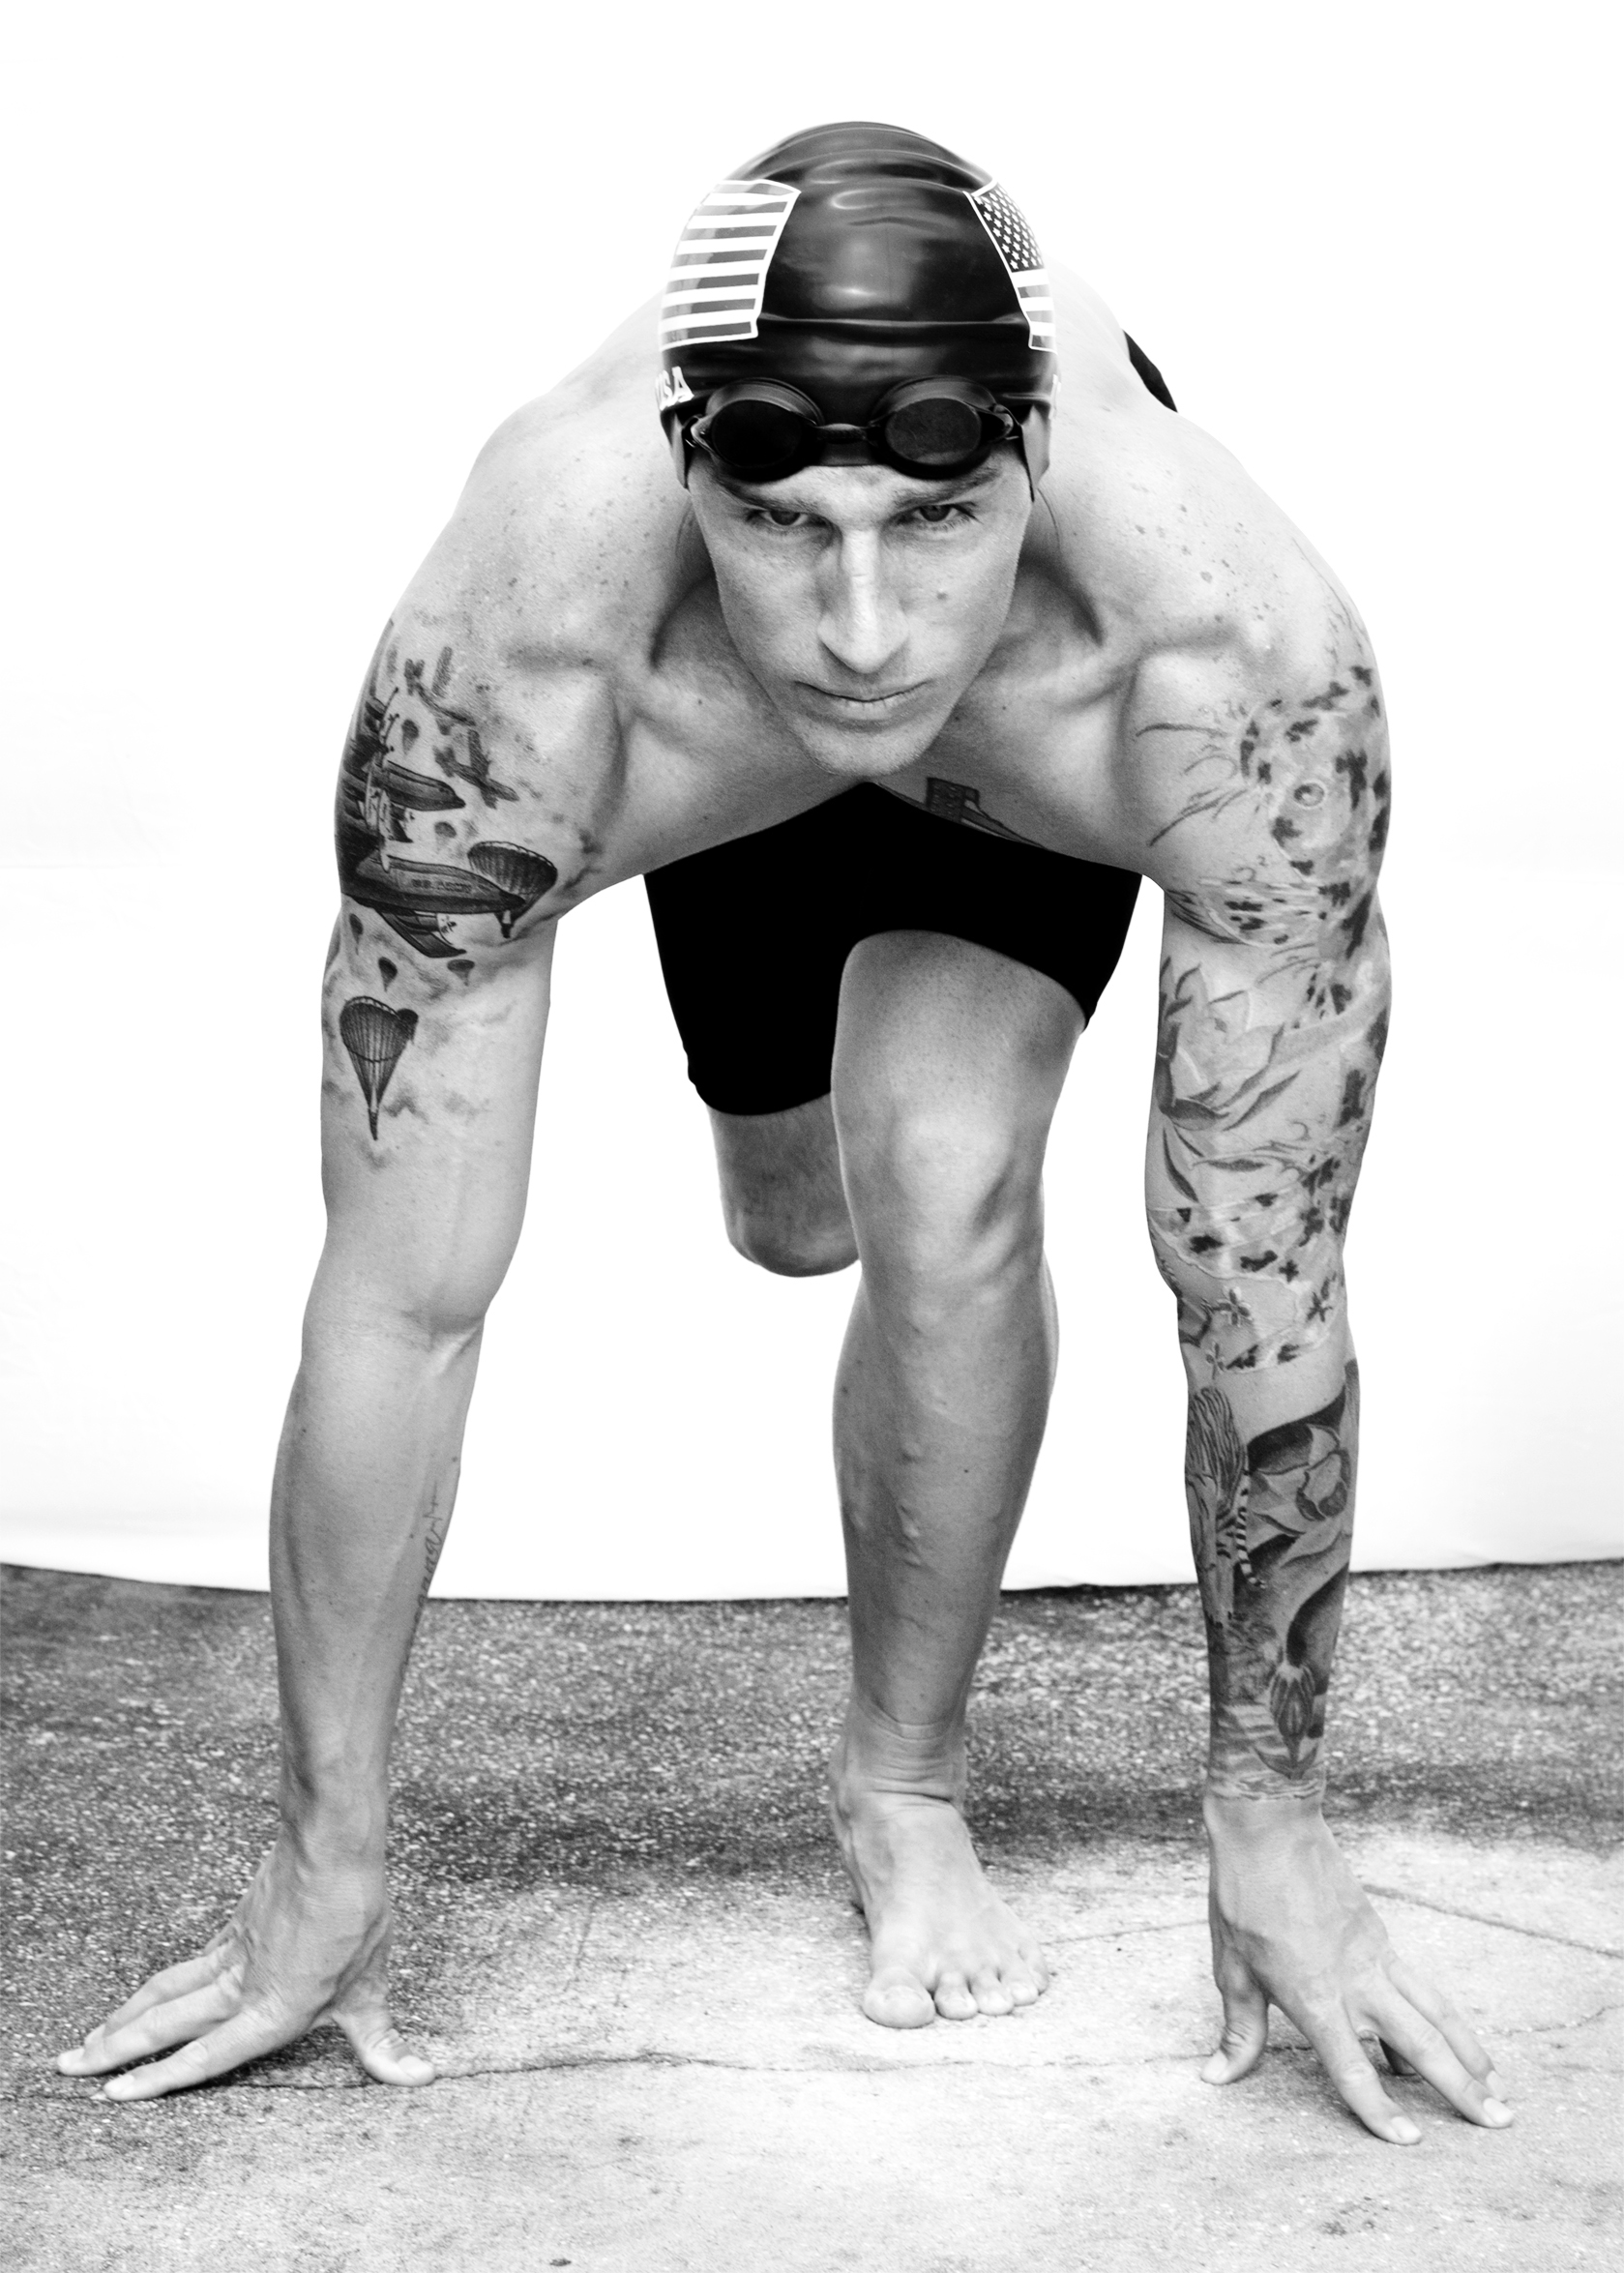 Allan Armstrong, USA, competed in cycling, swimming and track